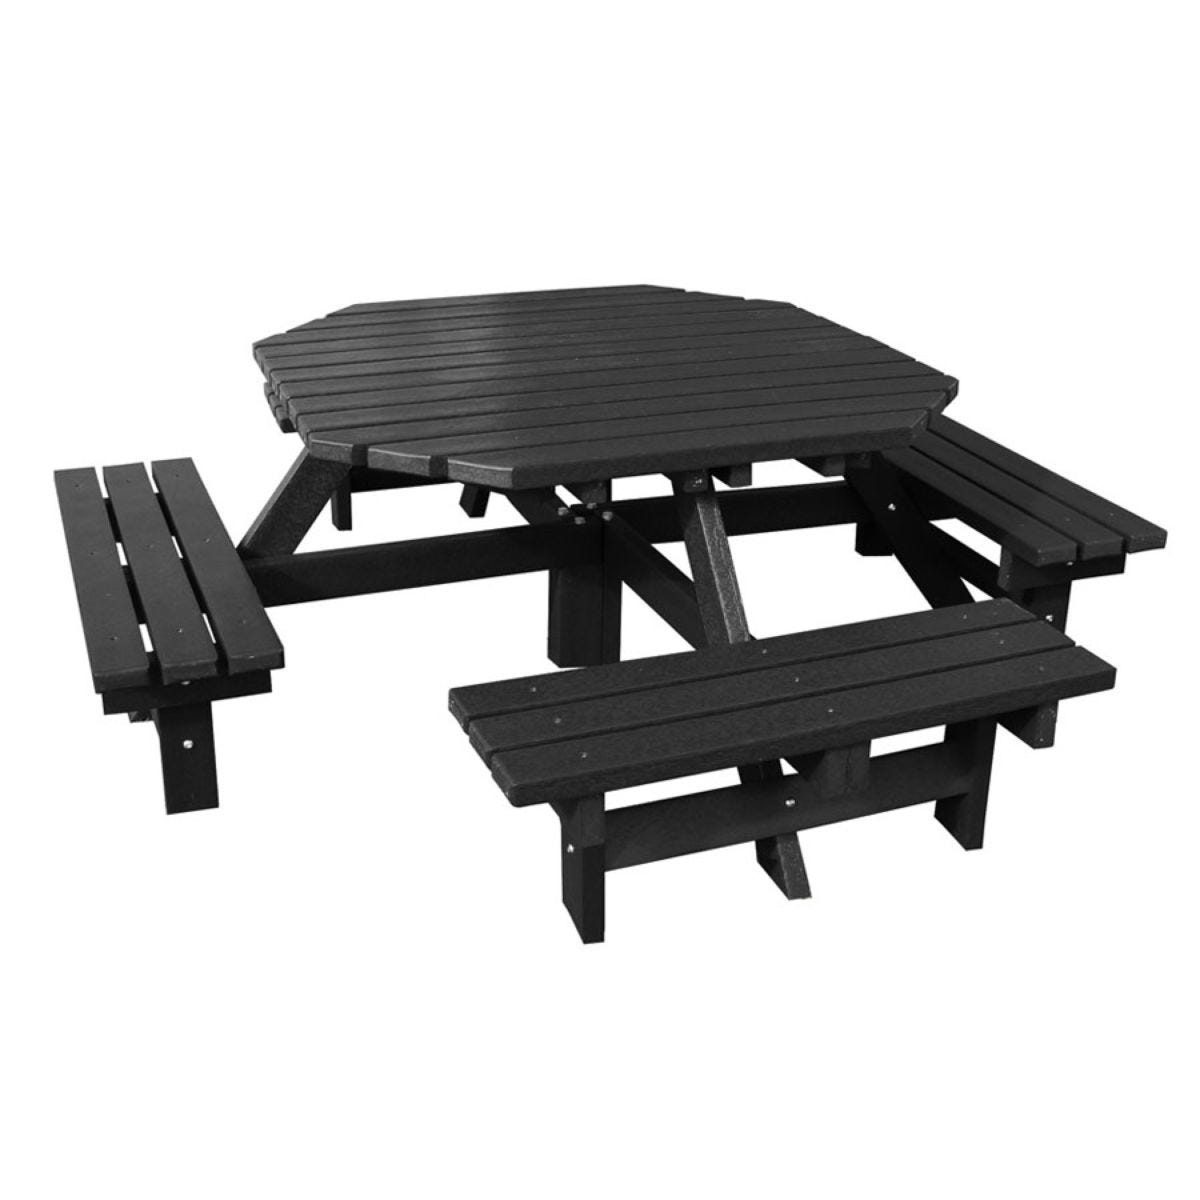 NBB Recycled Heavy Duty Octagonal 8-Seater Picnic Table - Black